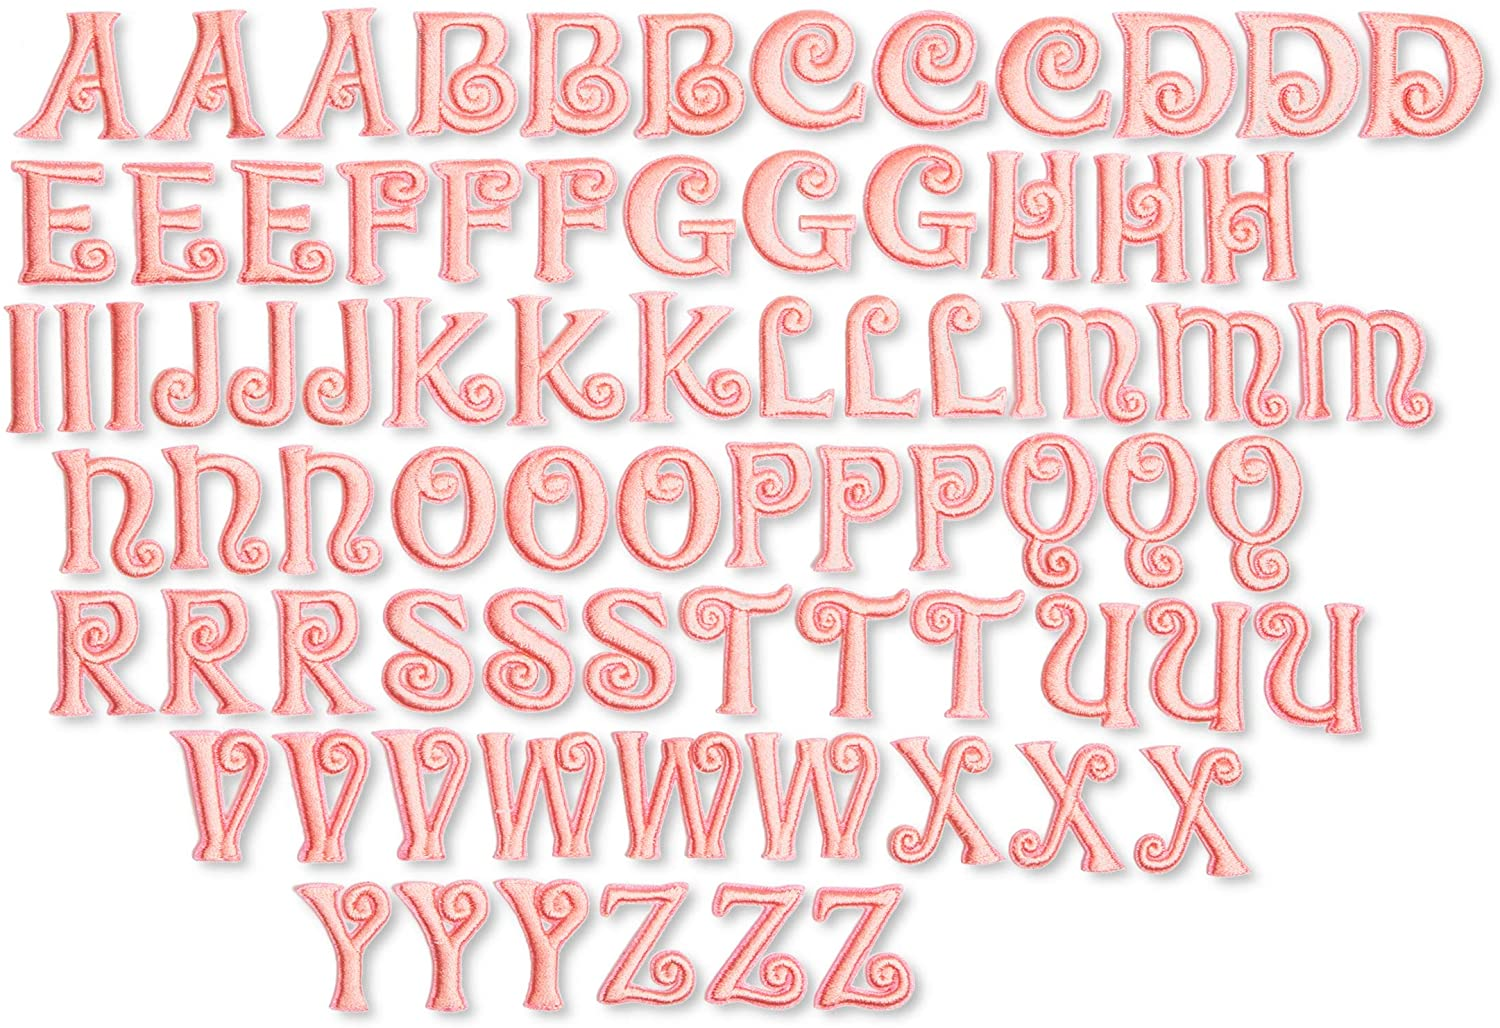 Iron-On Patch, Pink Alphabet Letter Patches for Crafts and Sewing (1 in, 78 Pieces)